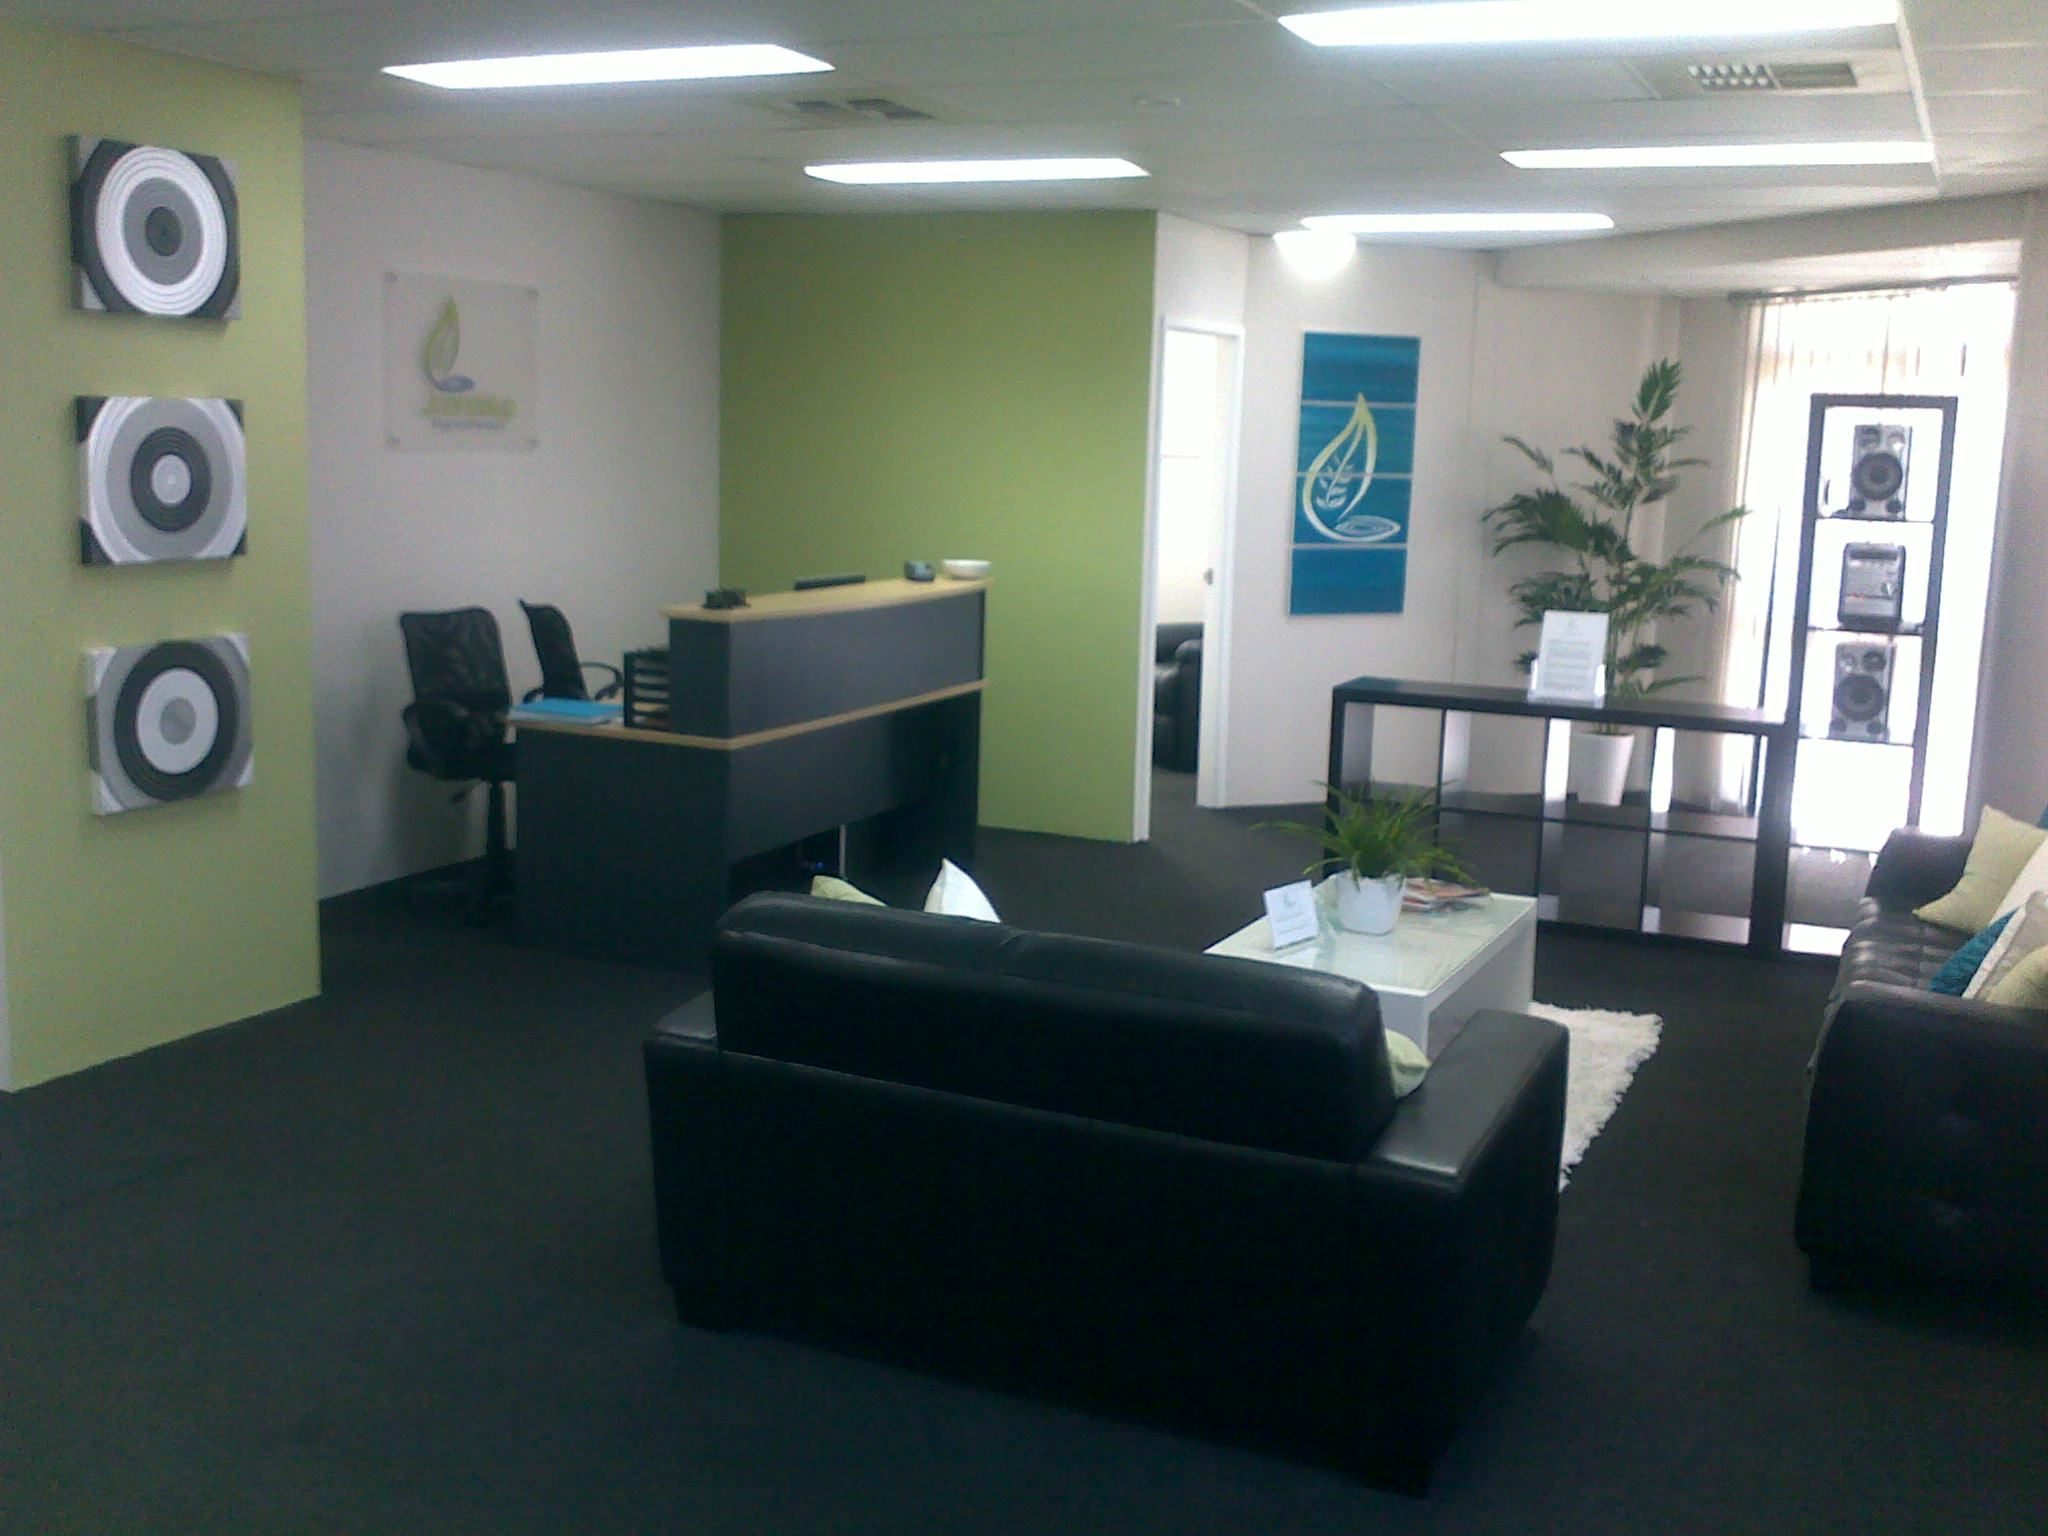 office workspace office workspace amazing design on commercial office space paint colors id=77278